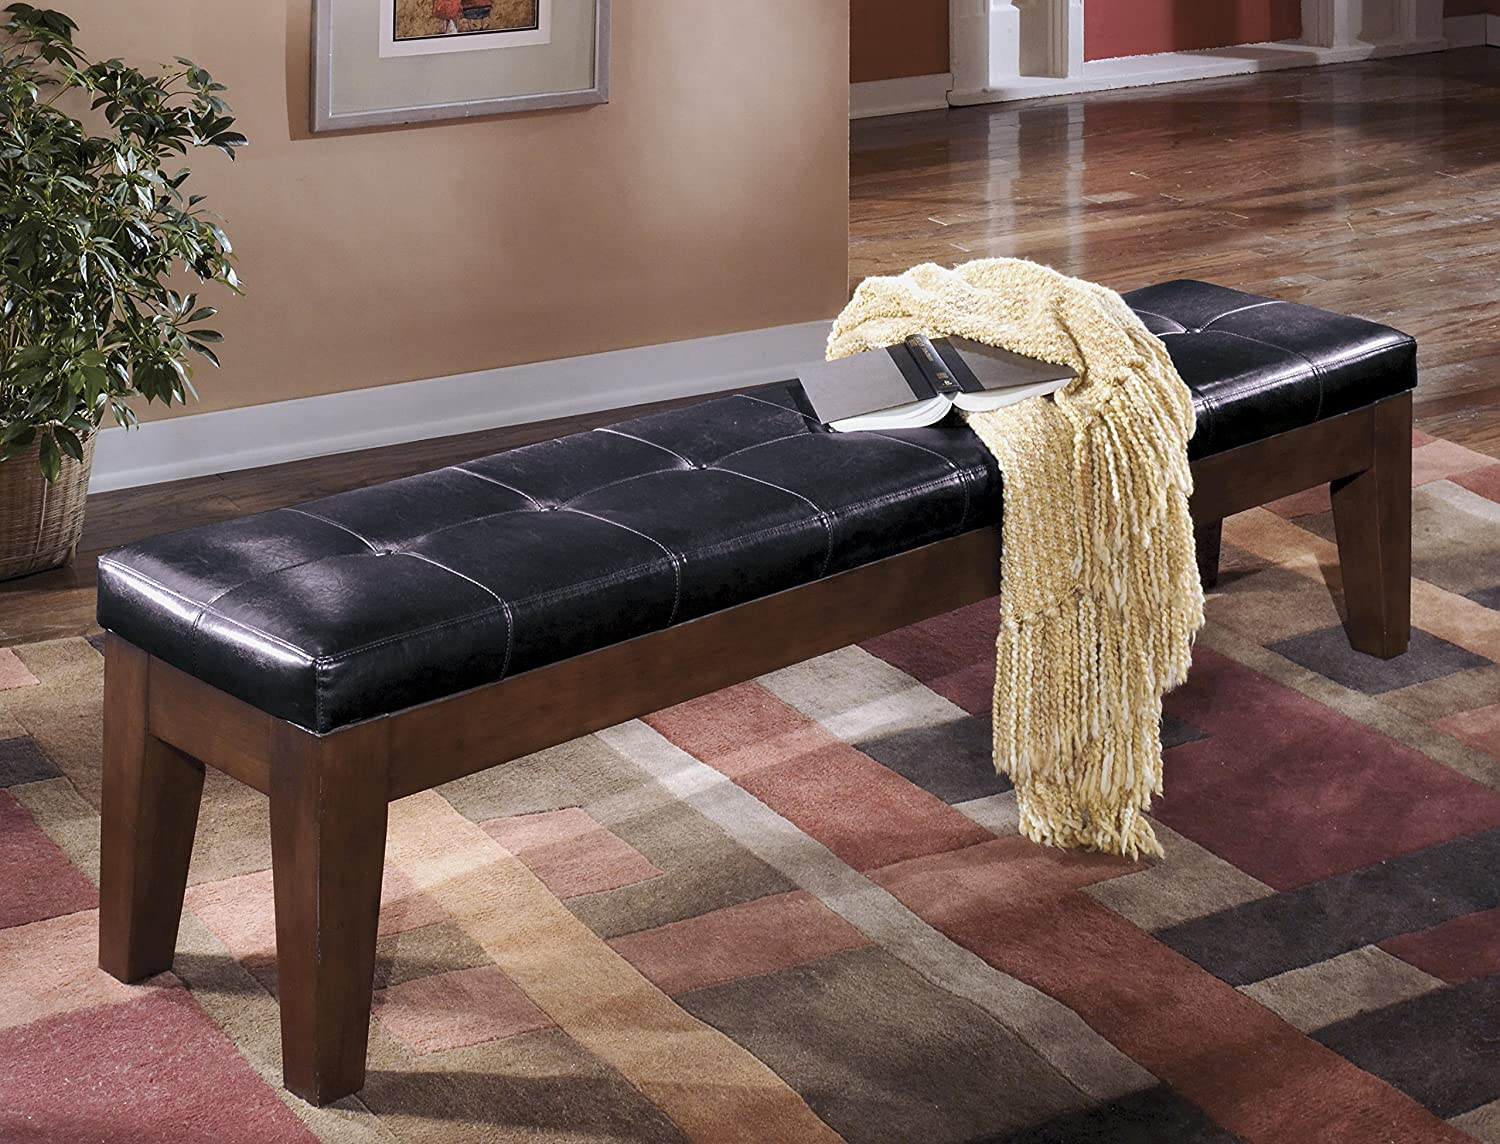 Lairecmont Casual Burnished Dark Brown Color Extra Large Upholstered Bench